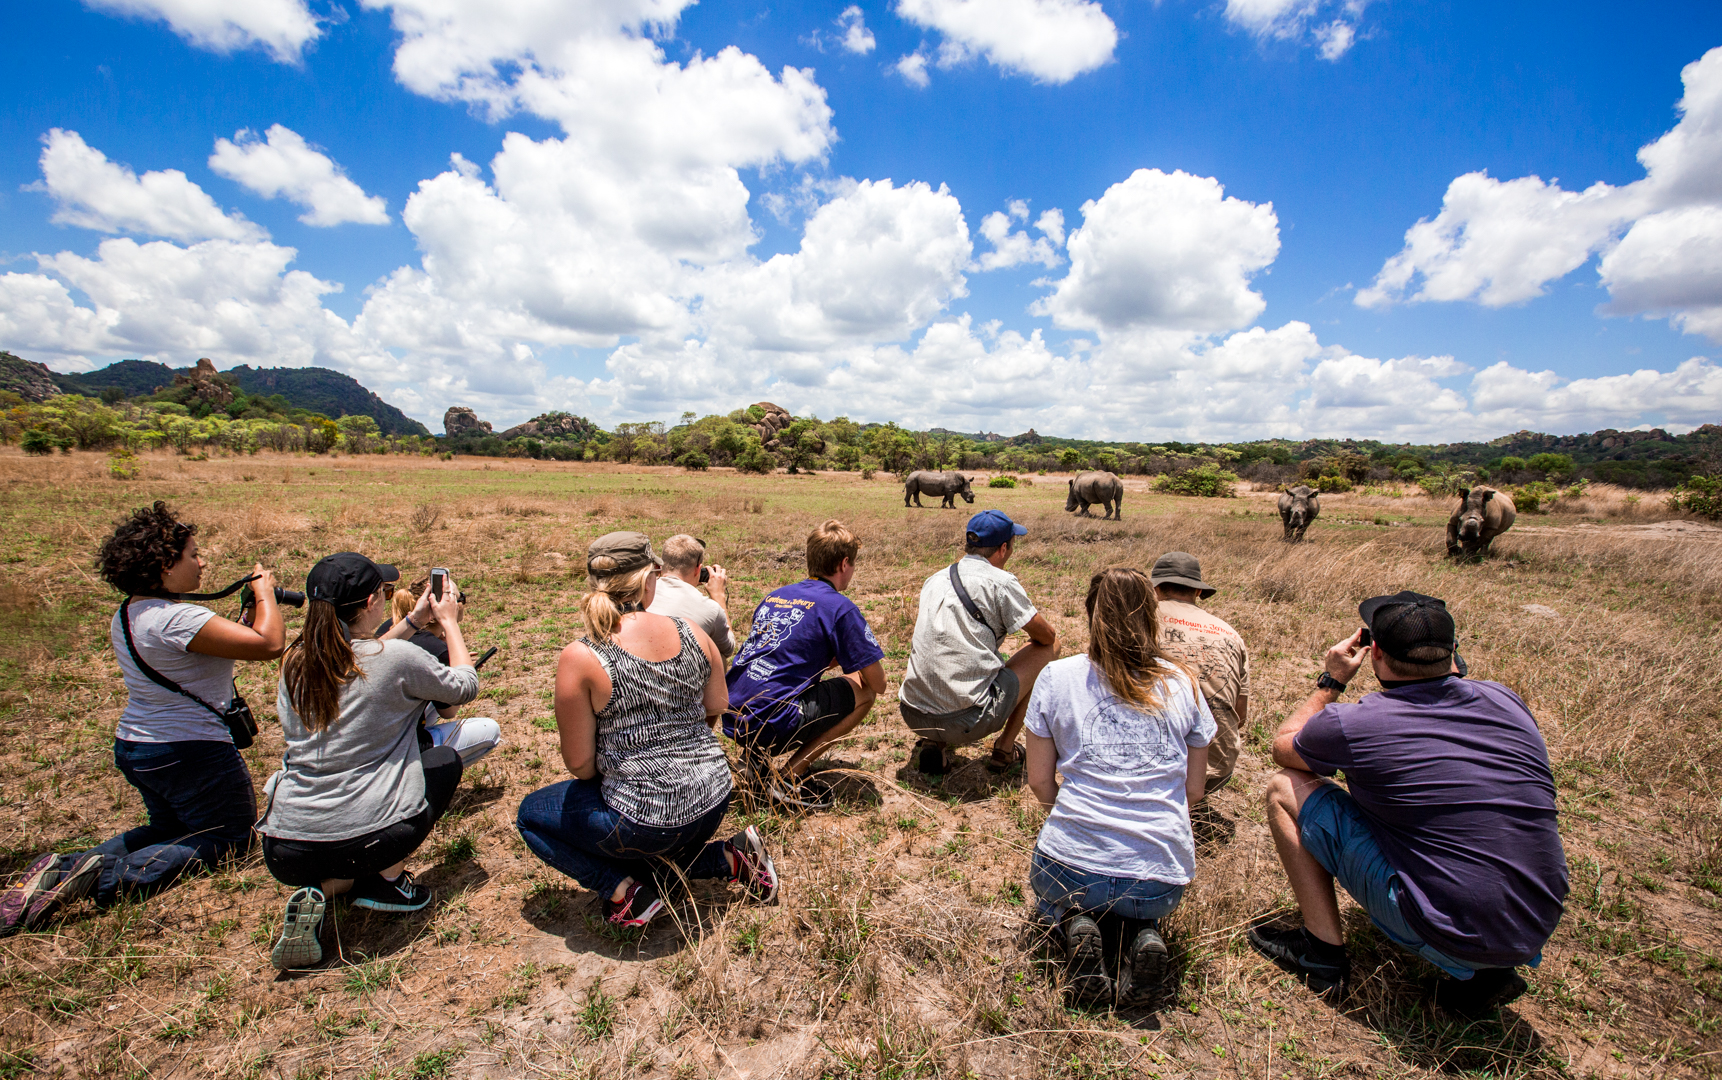 Zimbabwe's Matobo National Park offers some unique options to get up close and personal with the rhinos.